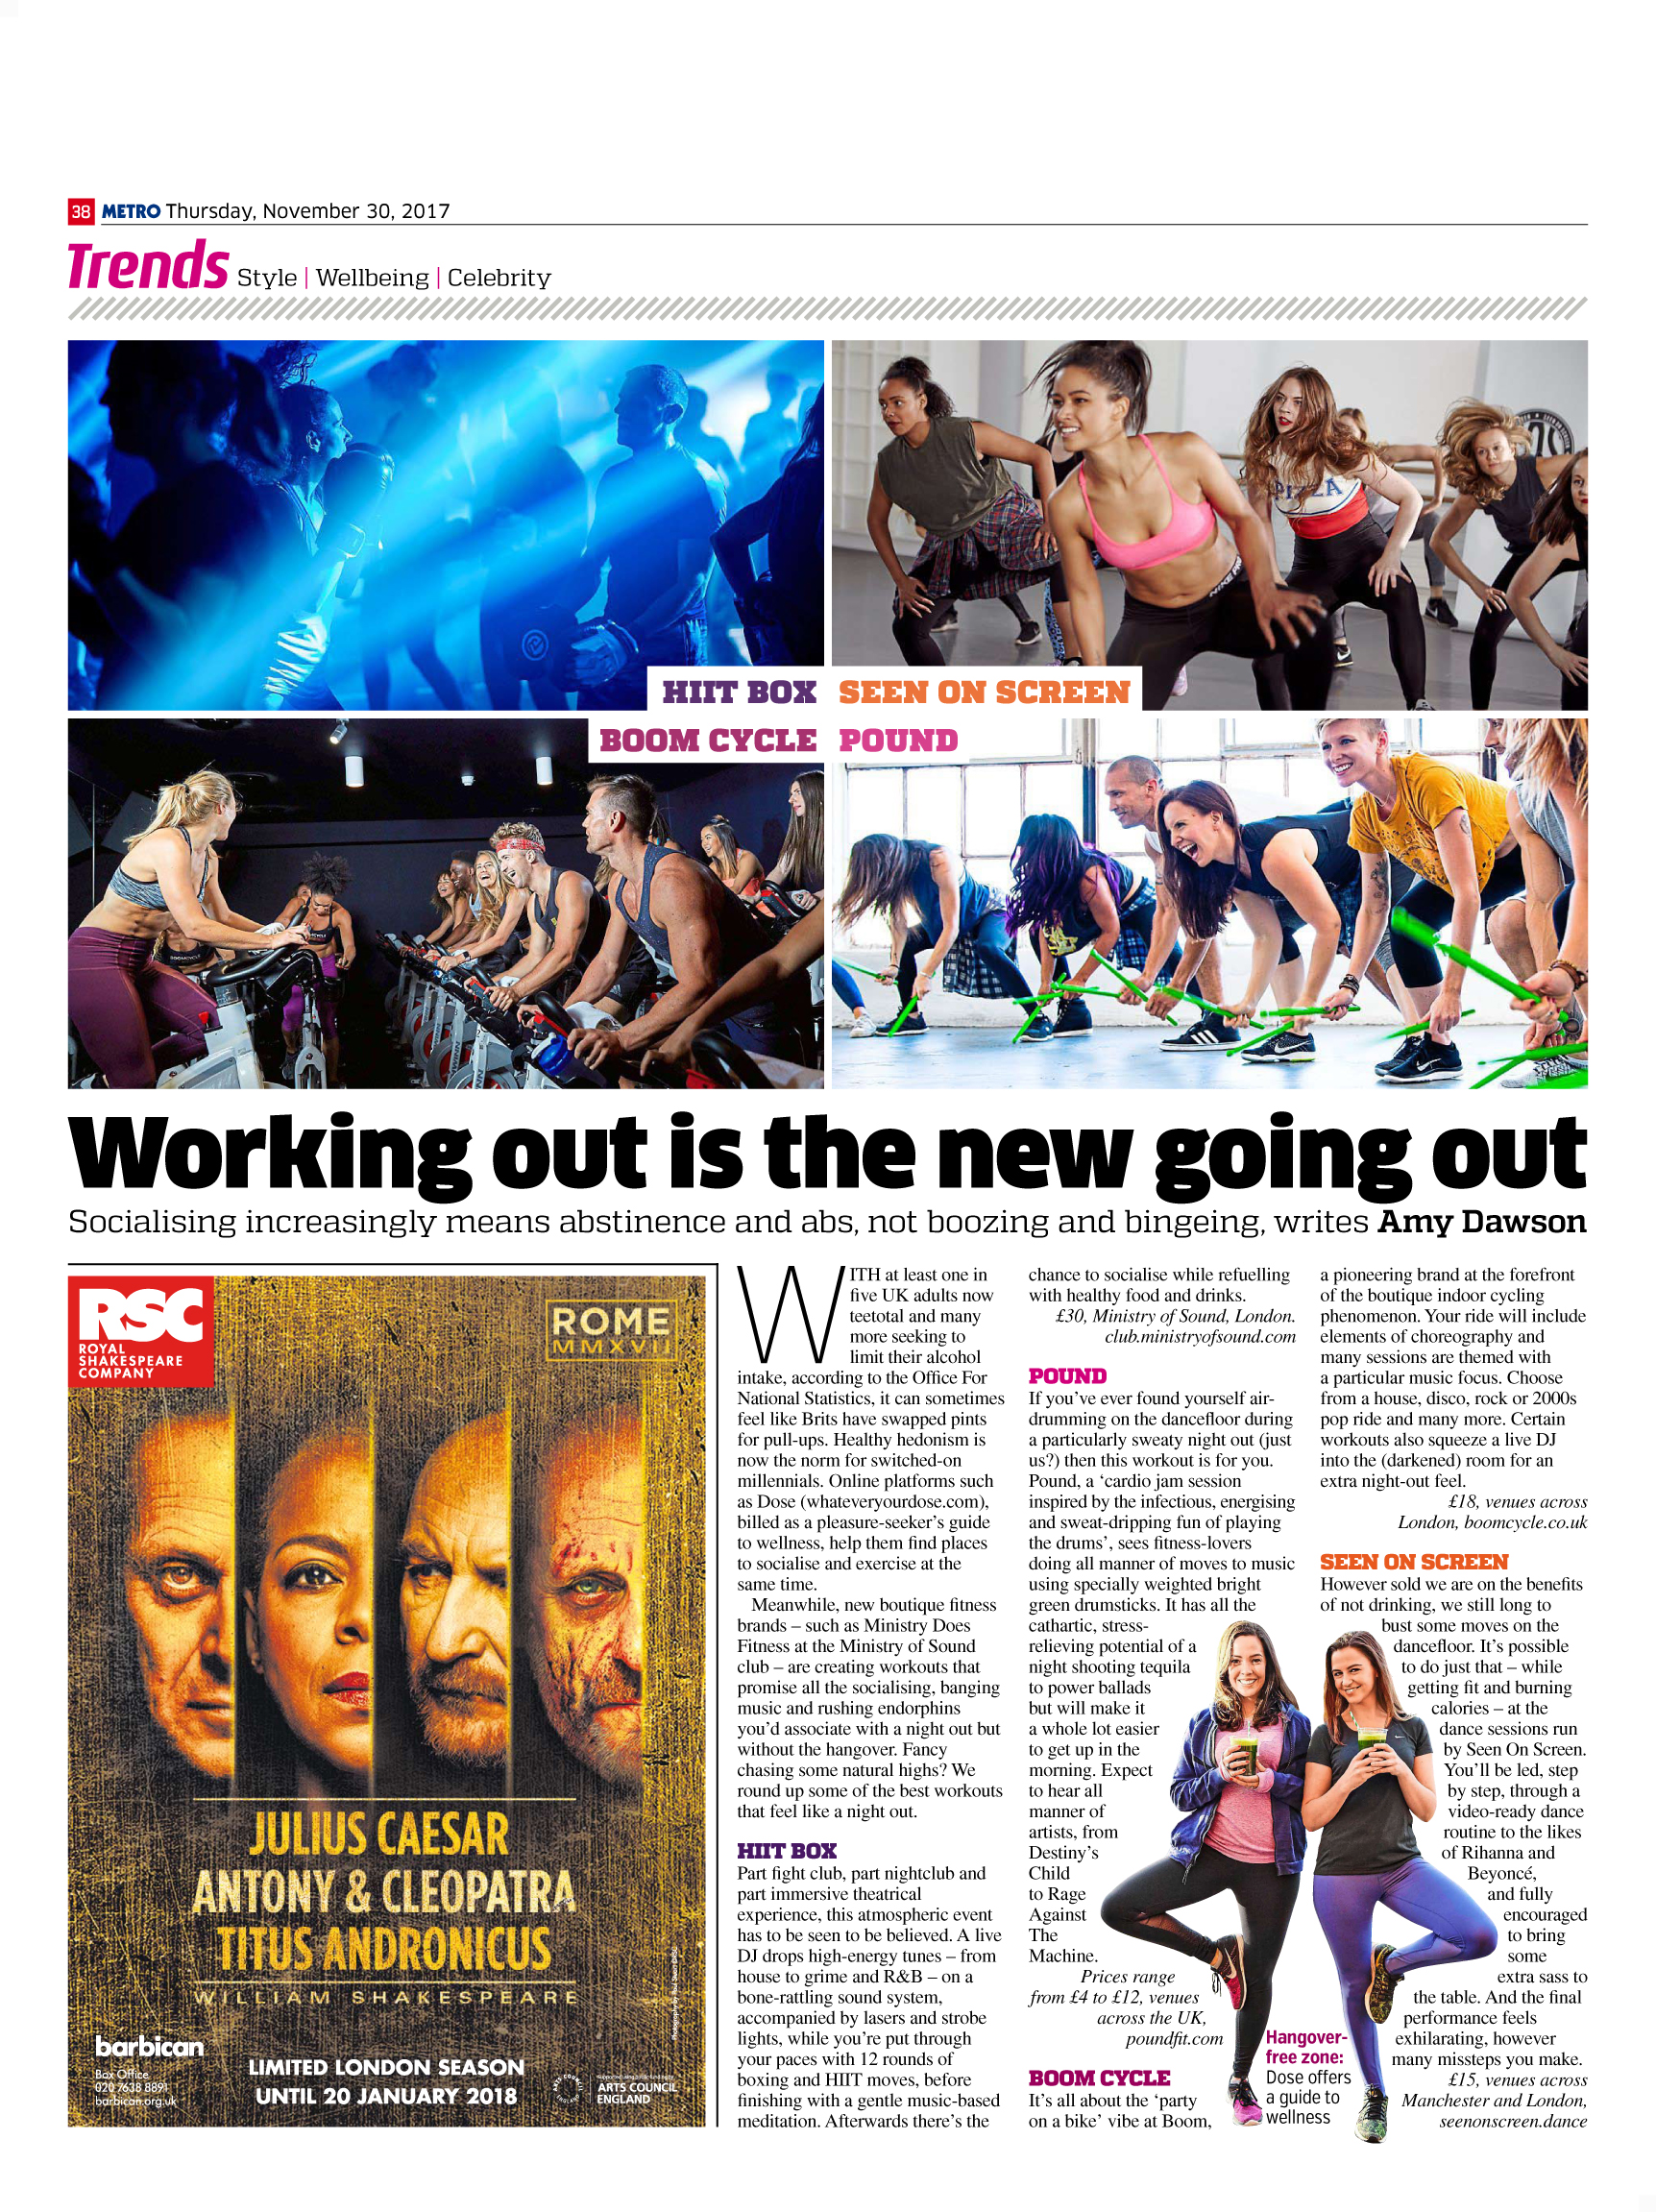 Workouts that feel like Nights Out (Metro, 30th Nov 2017)